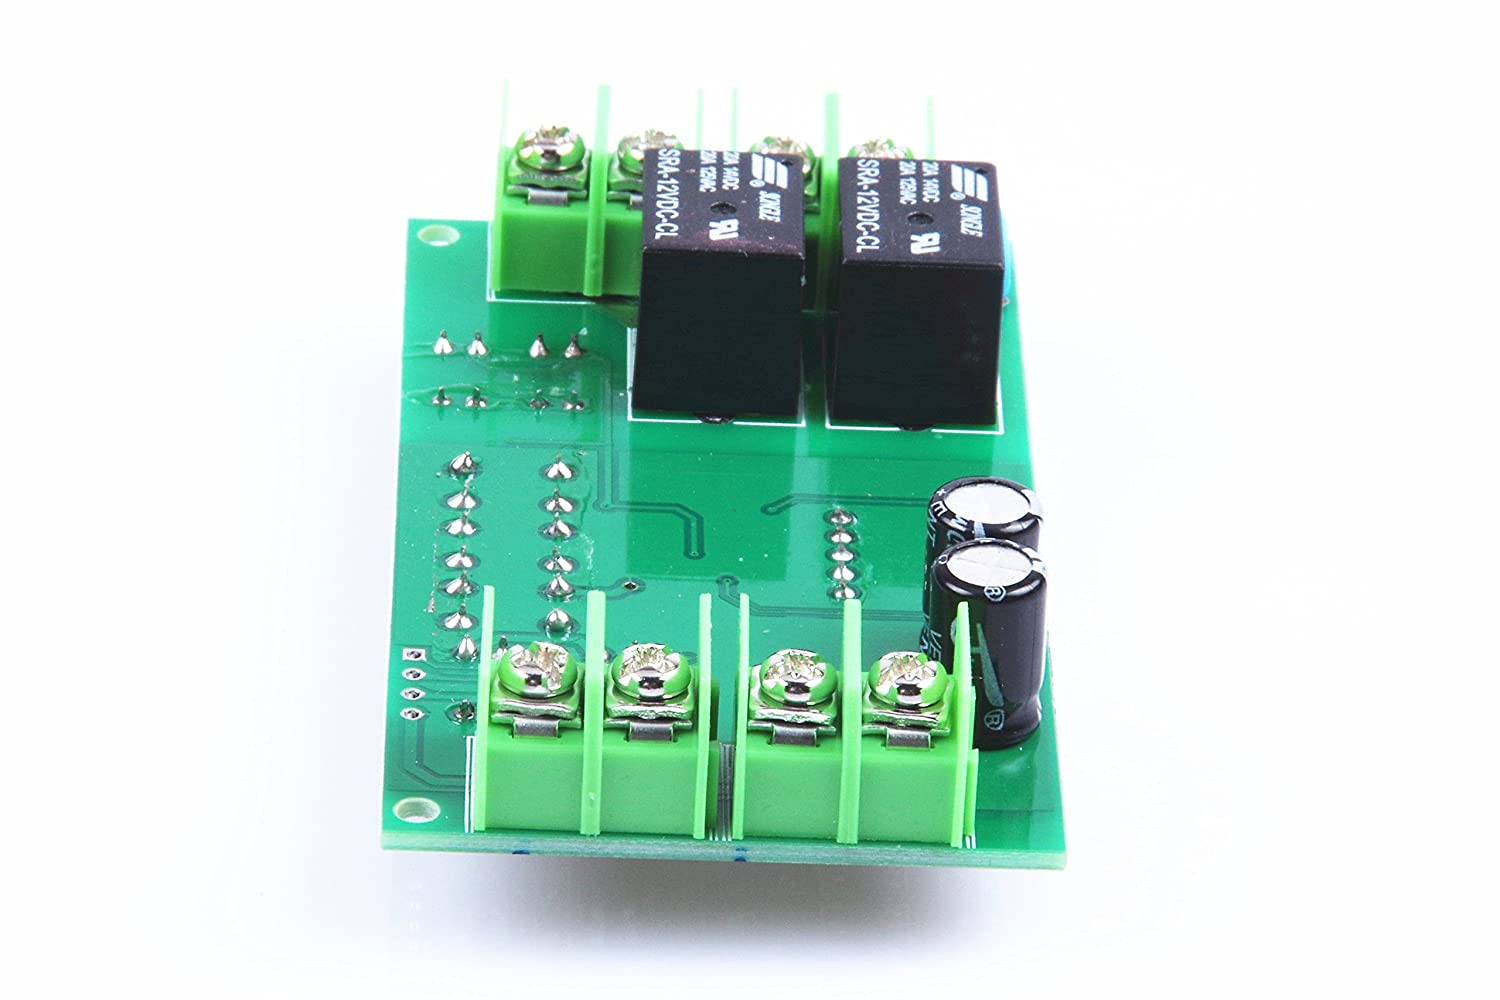 Knacro Reversible Motor Control Board Delay Timer Relay State Relays The Forward And Reverse Operation Circuit Programmable Dc12v 10a Positive Inversion Home Audio Theater